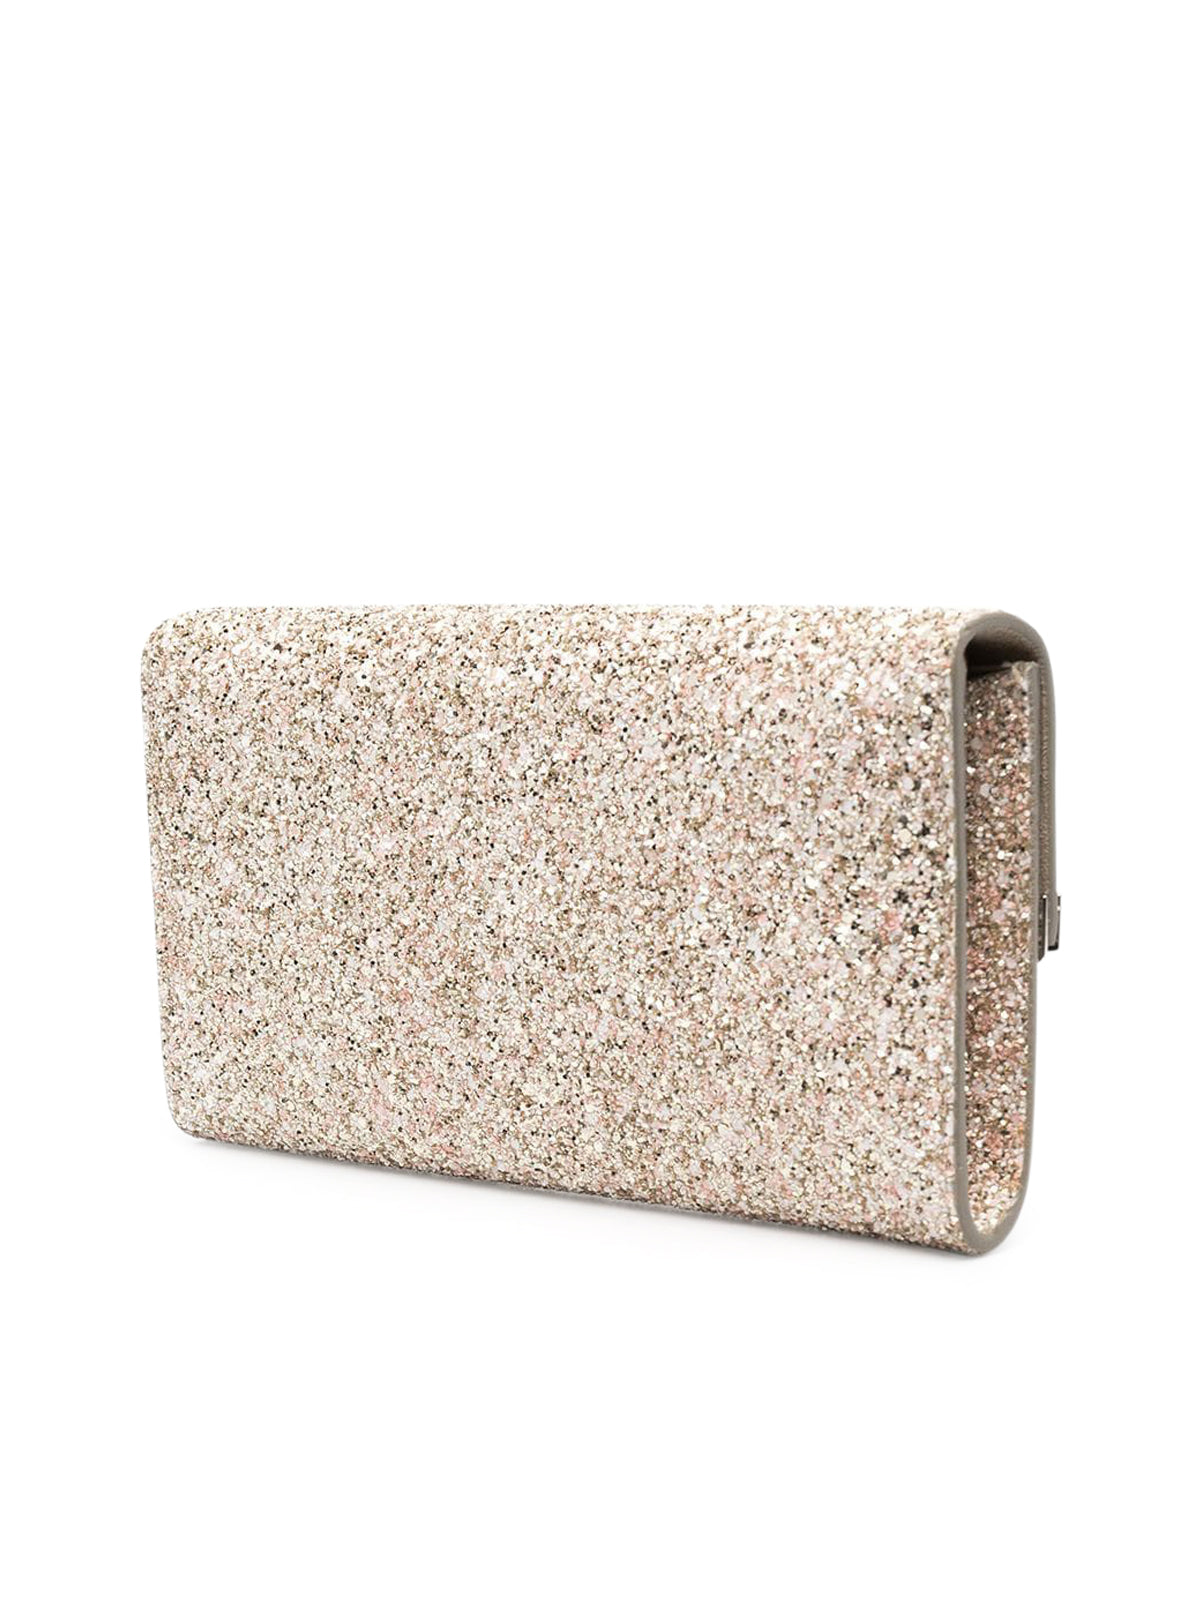 Emmie shoulder bag with glitter